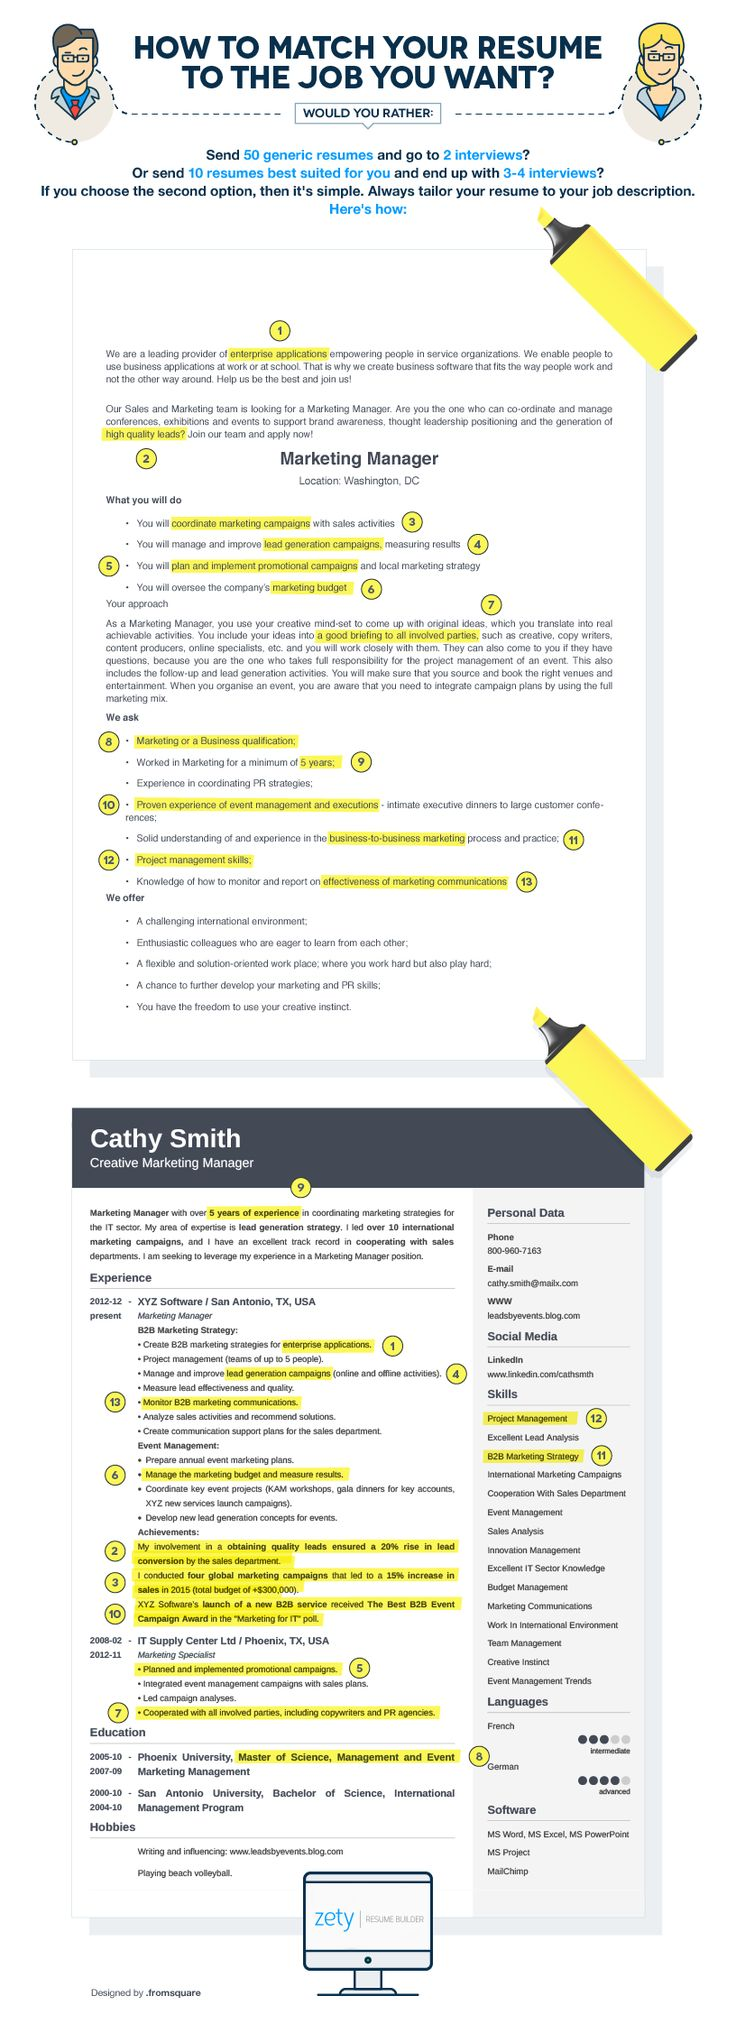 6 Tips on How to Tailor Your Resume to a Job Description